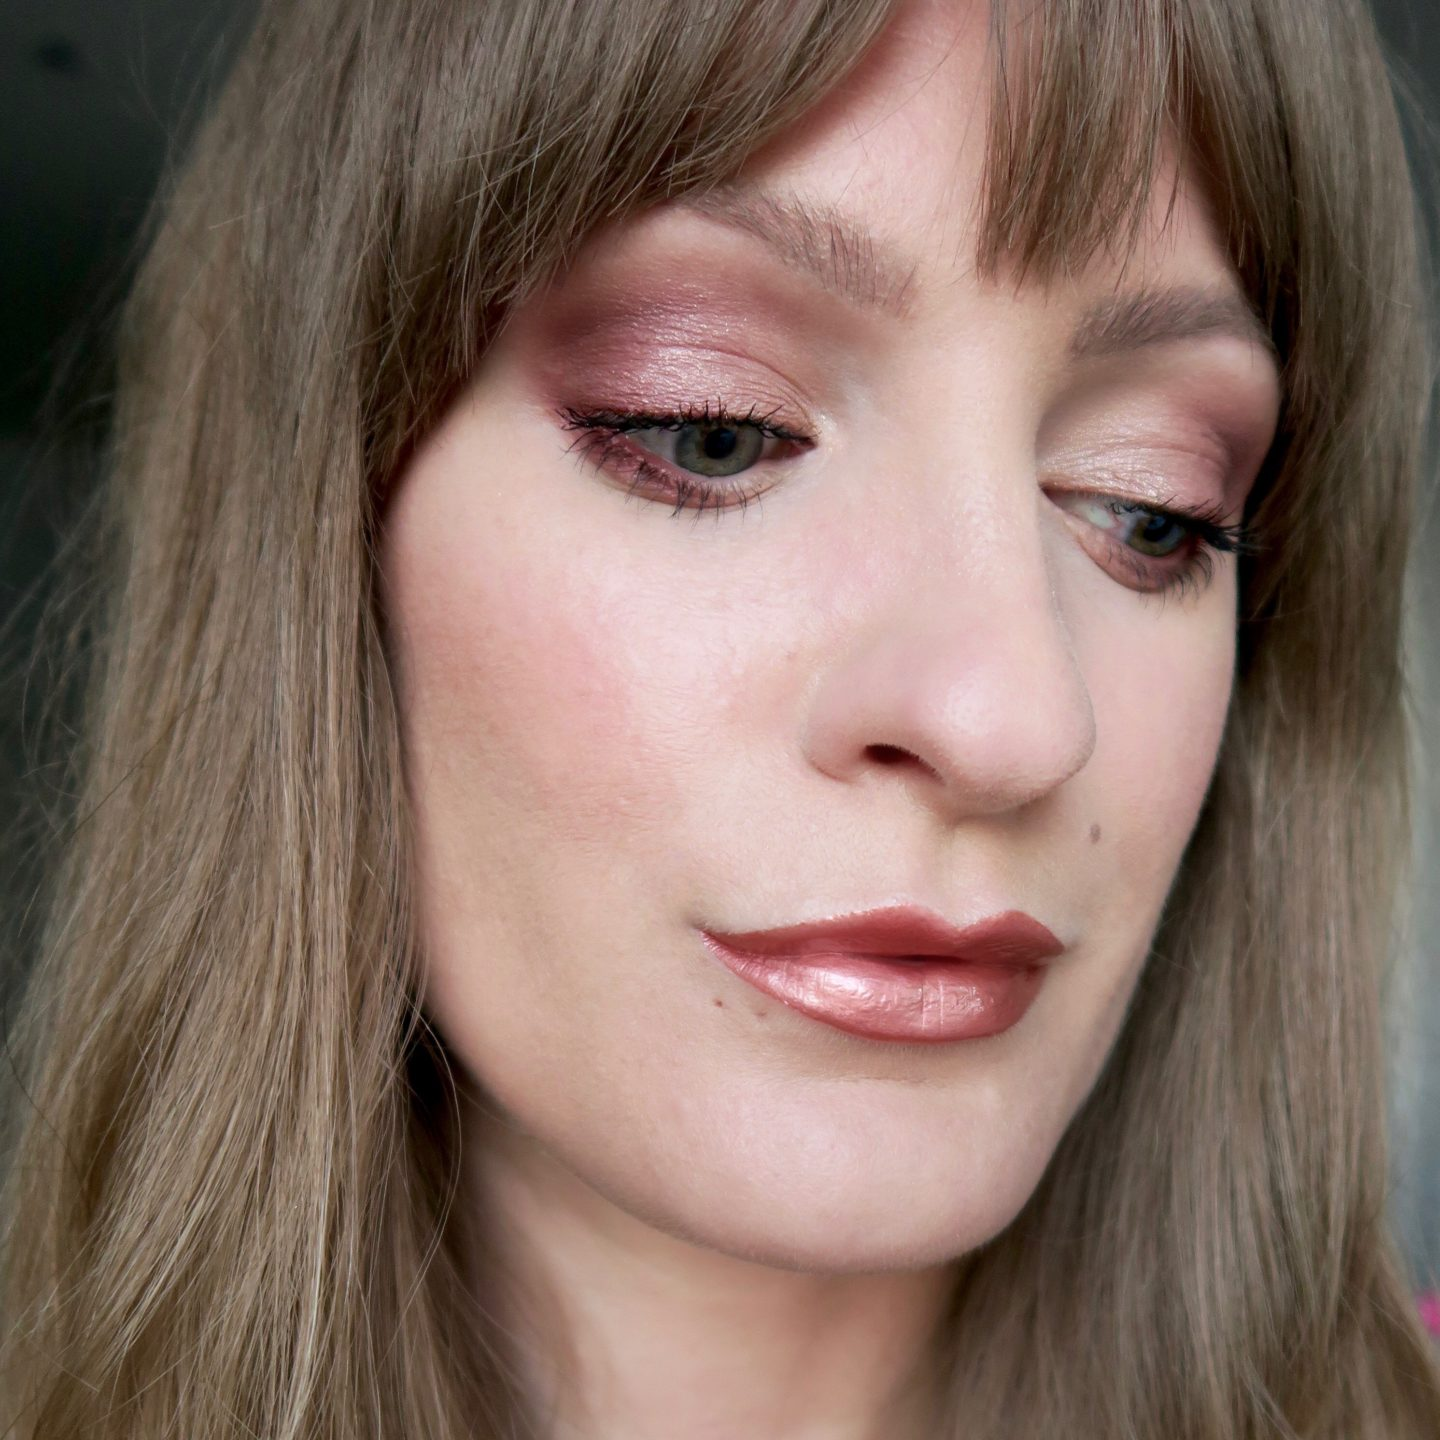 Rose gold lipstick, smokey eye, long fringe (Glowy make up edit)